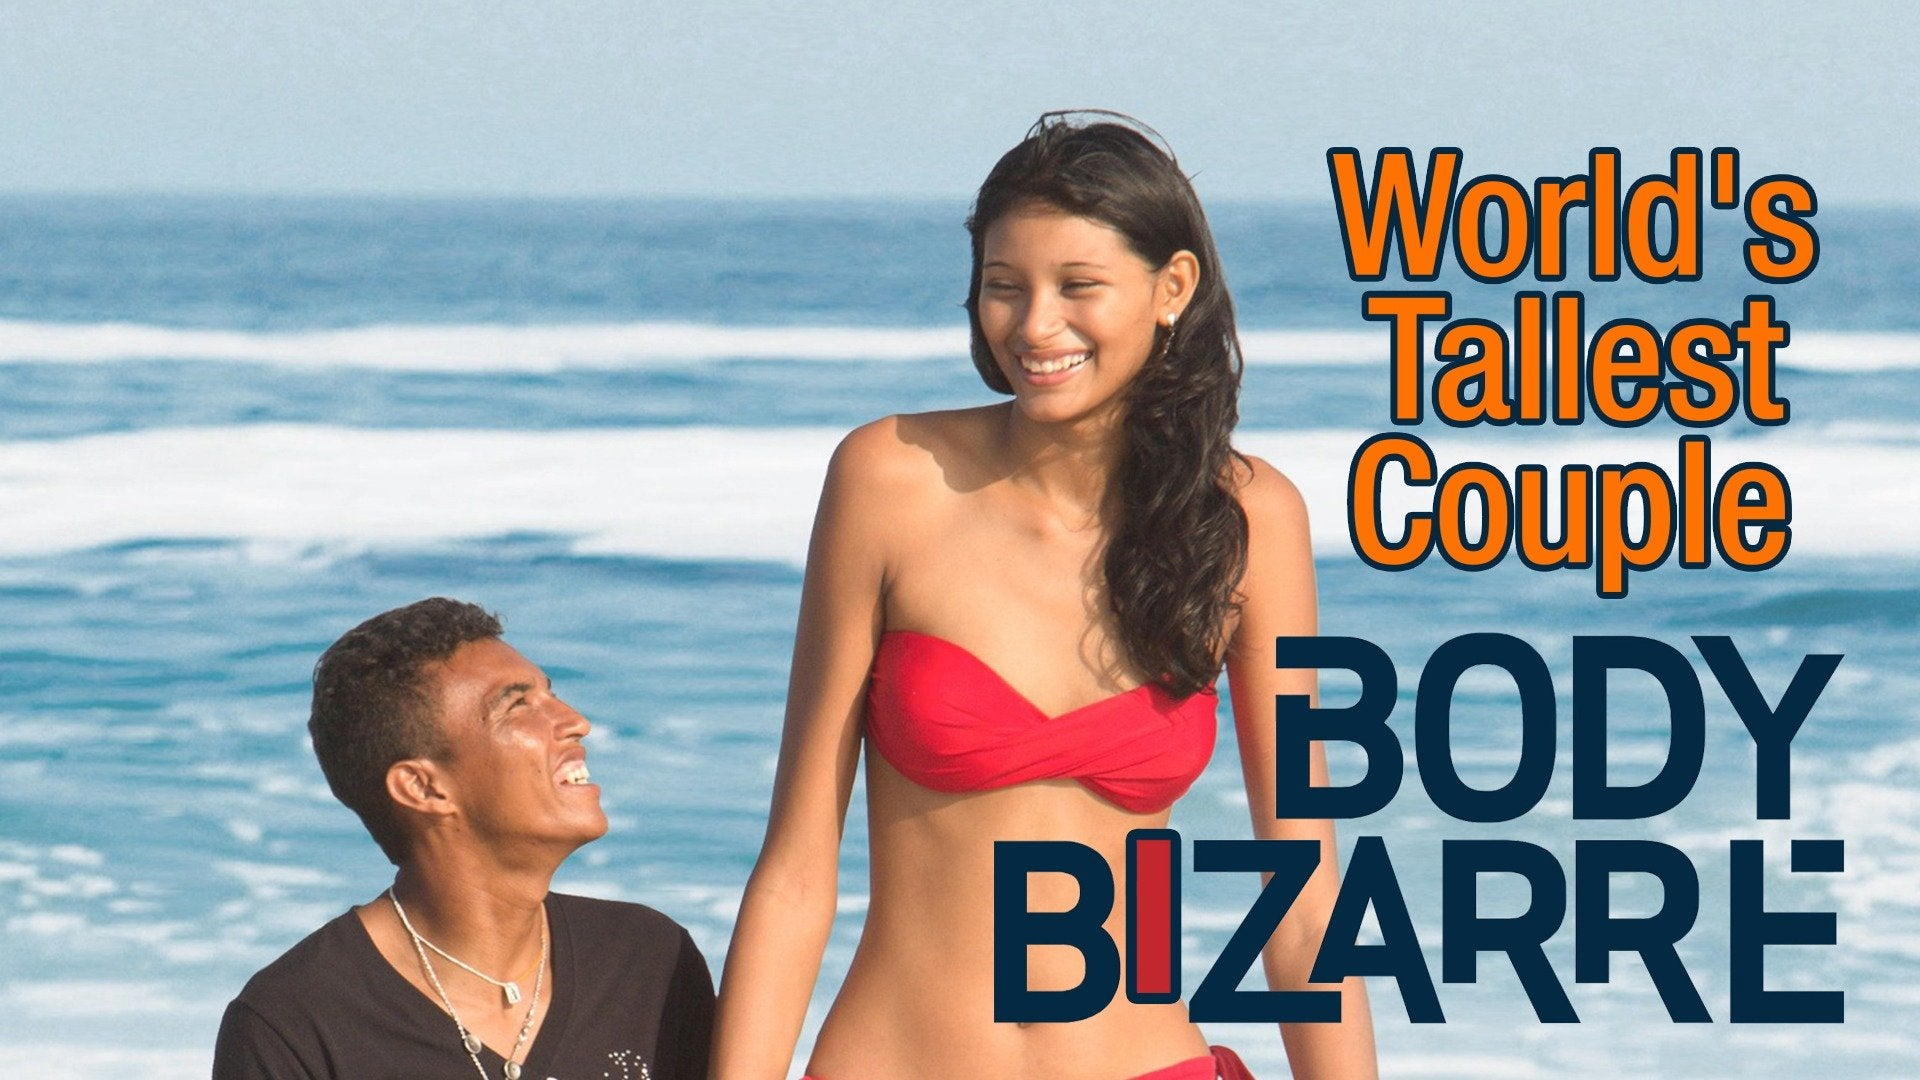 World's Tallest Couple: Body Bizarre